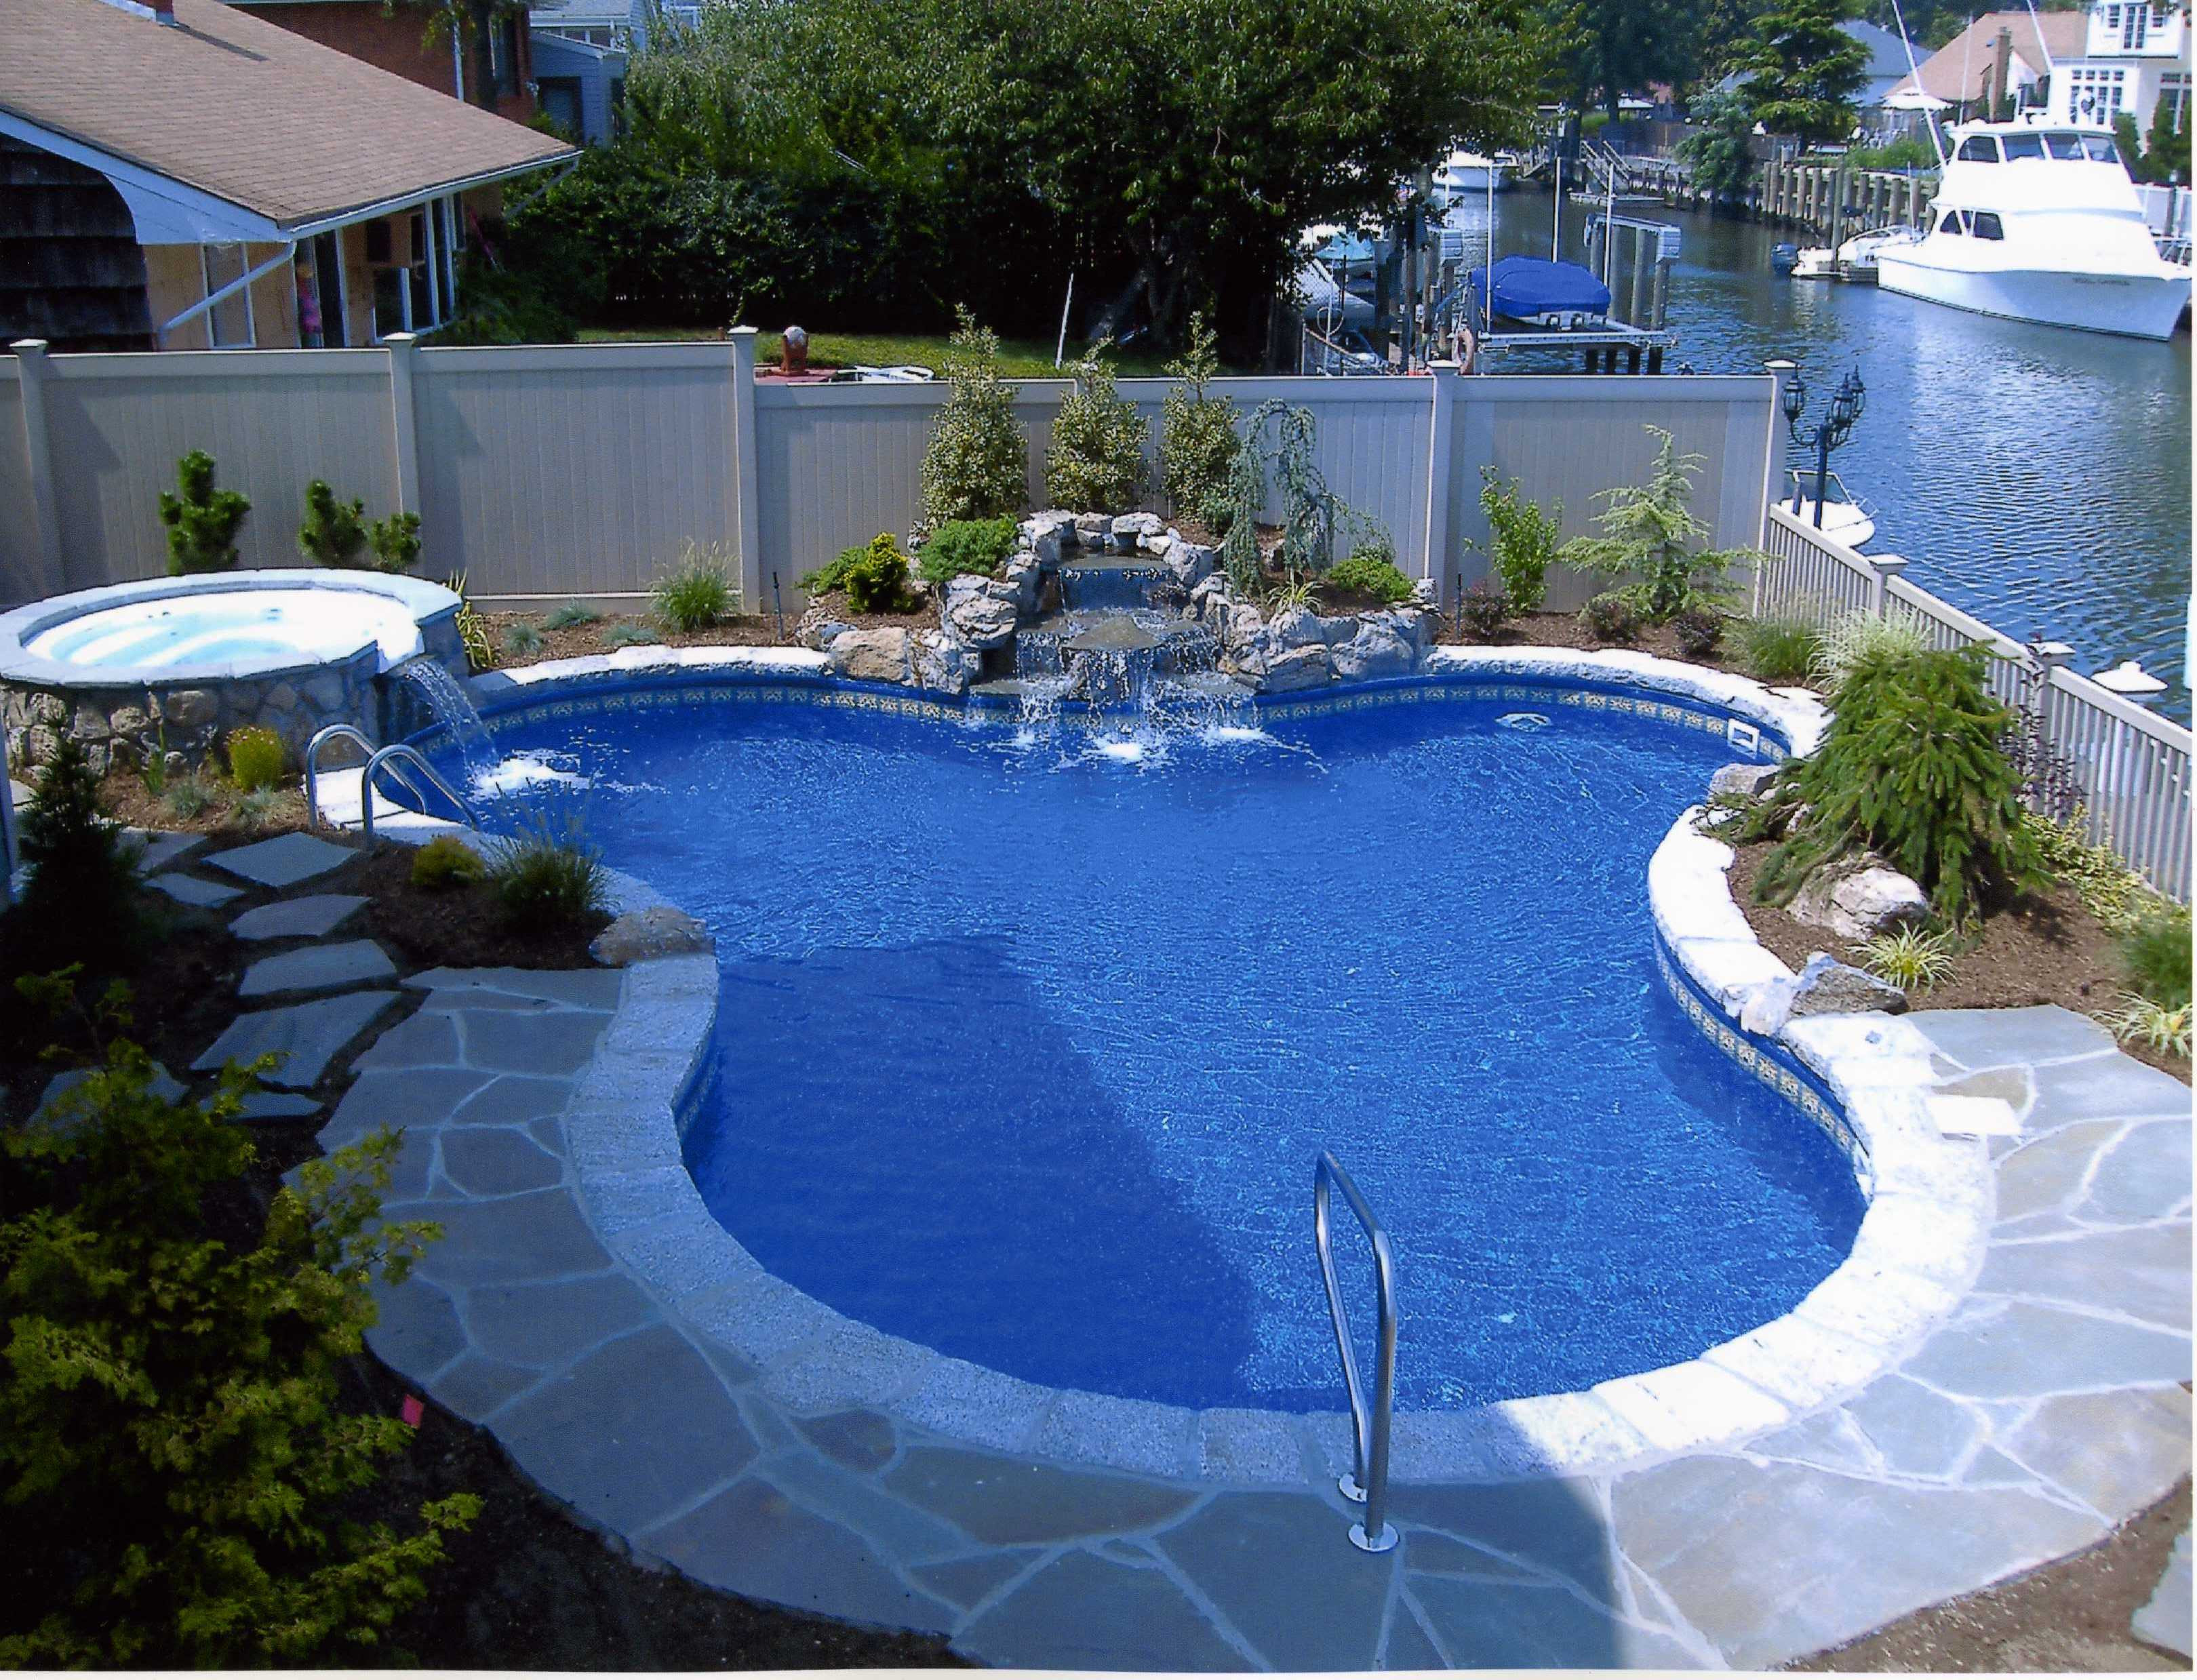 Best ideas about Backyard Pool Ideas . Save or Pin Backyard Landscaping Ideas Swimming Pool Design Now.